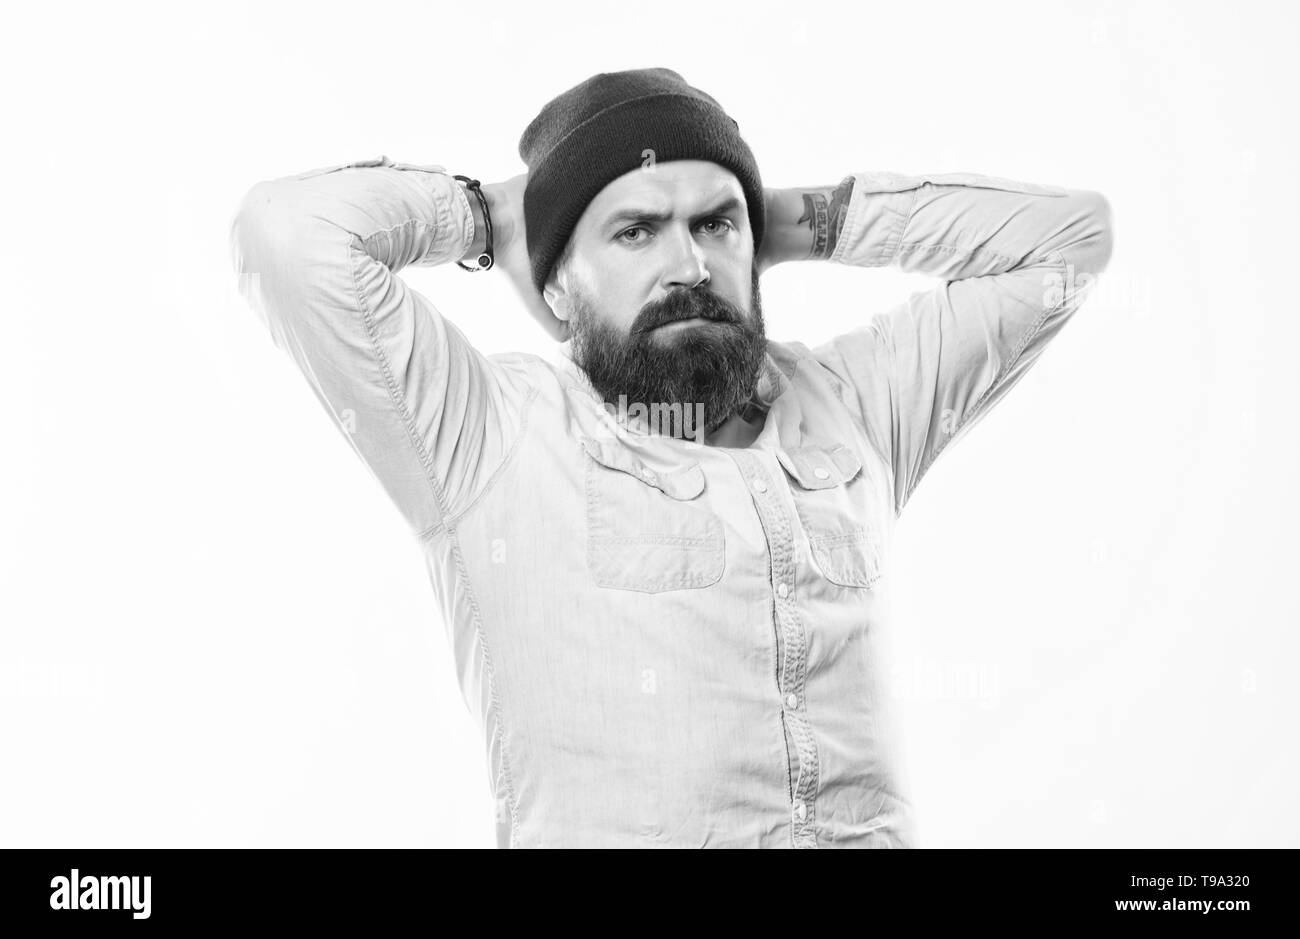 Barbershop concept. Man bearded with mustache brutal masculine appearance. Hipster style and fashion. Hipster bearded guy wear bright hat accessory. Bearded man posing confidently on white background. - Stock Image